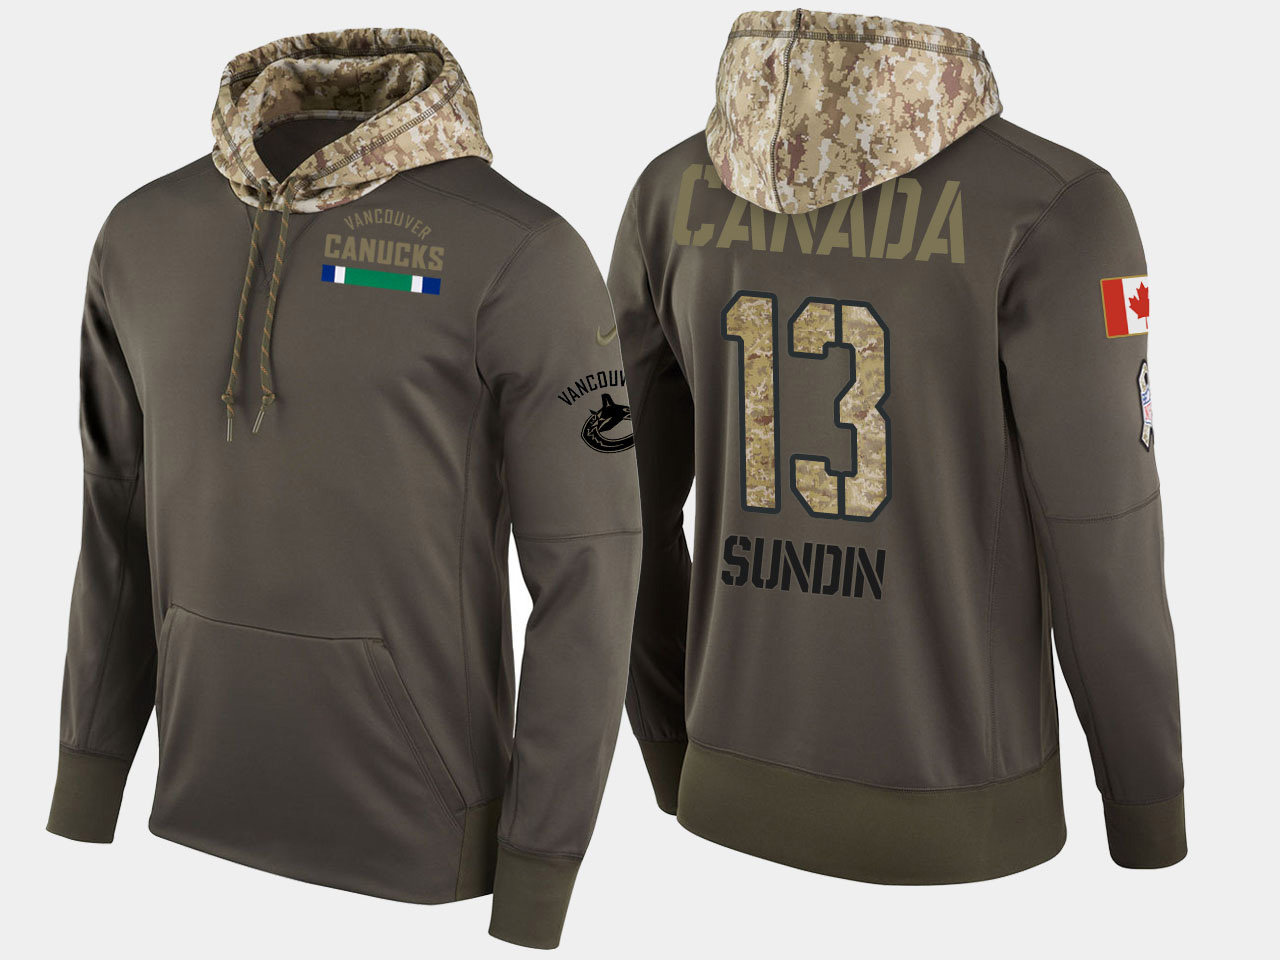 Nike Canucks 13 Mats Sundin Retired Olive Salute To Service Pullover Hoodie